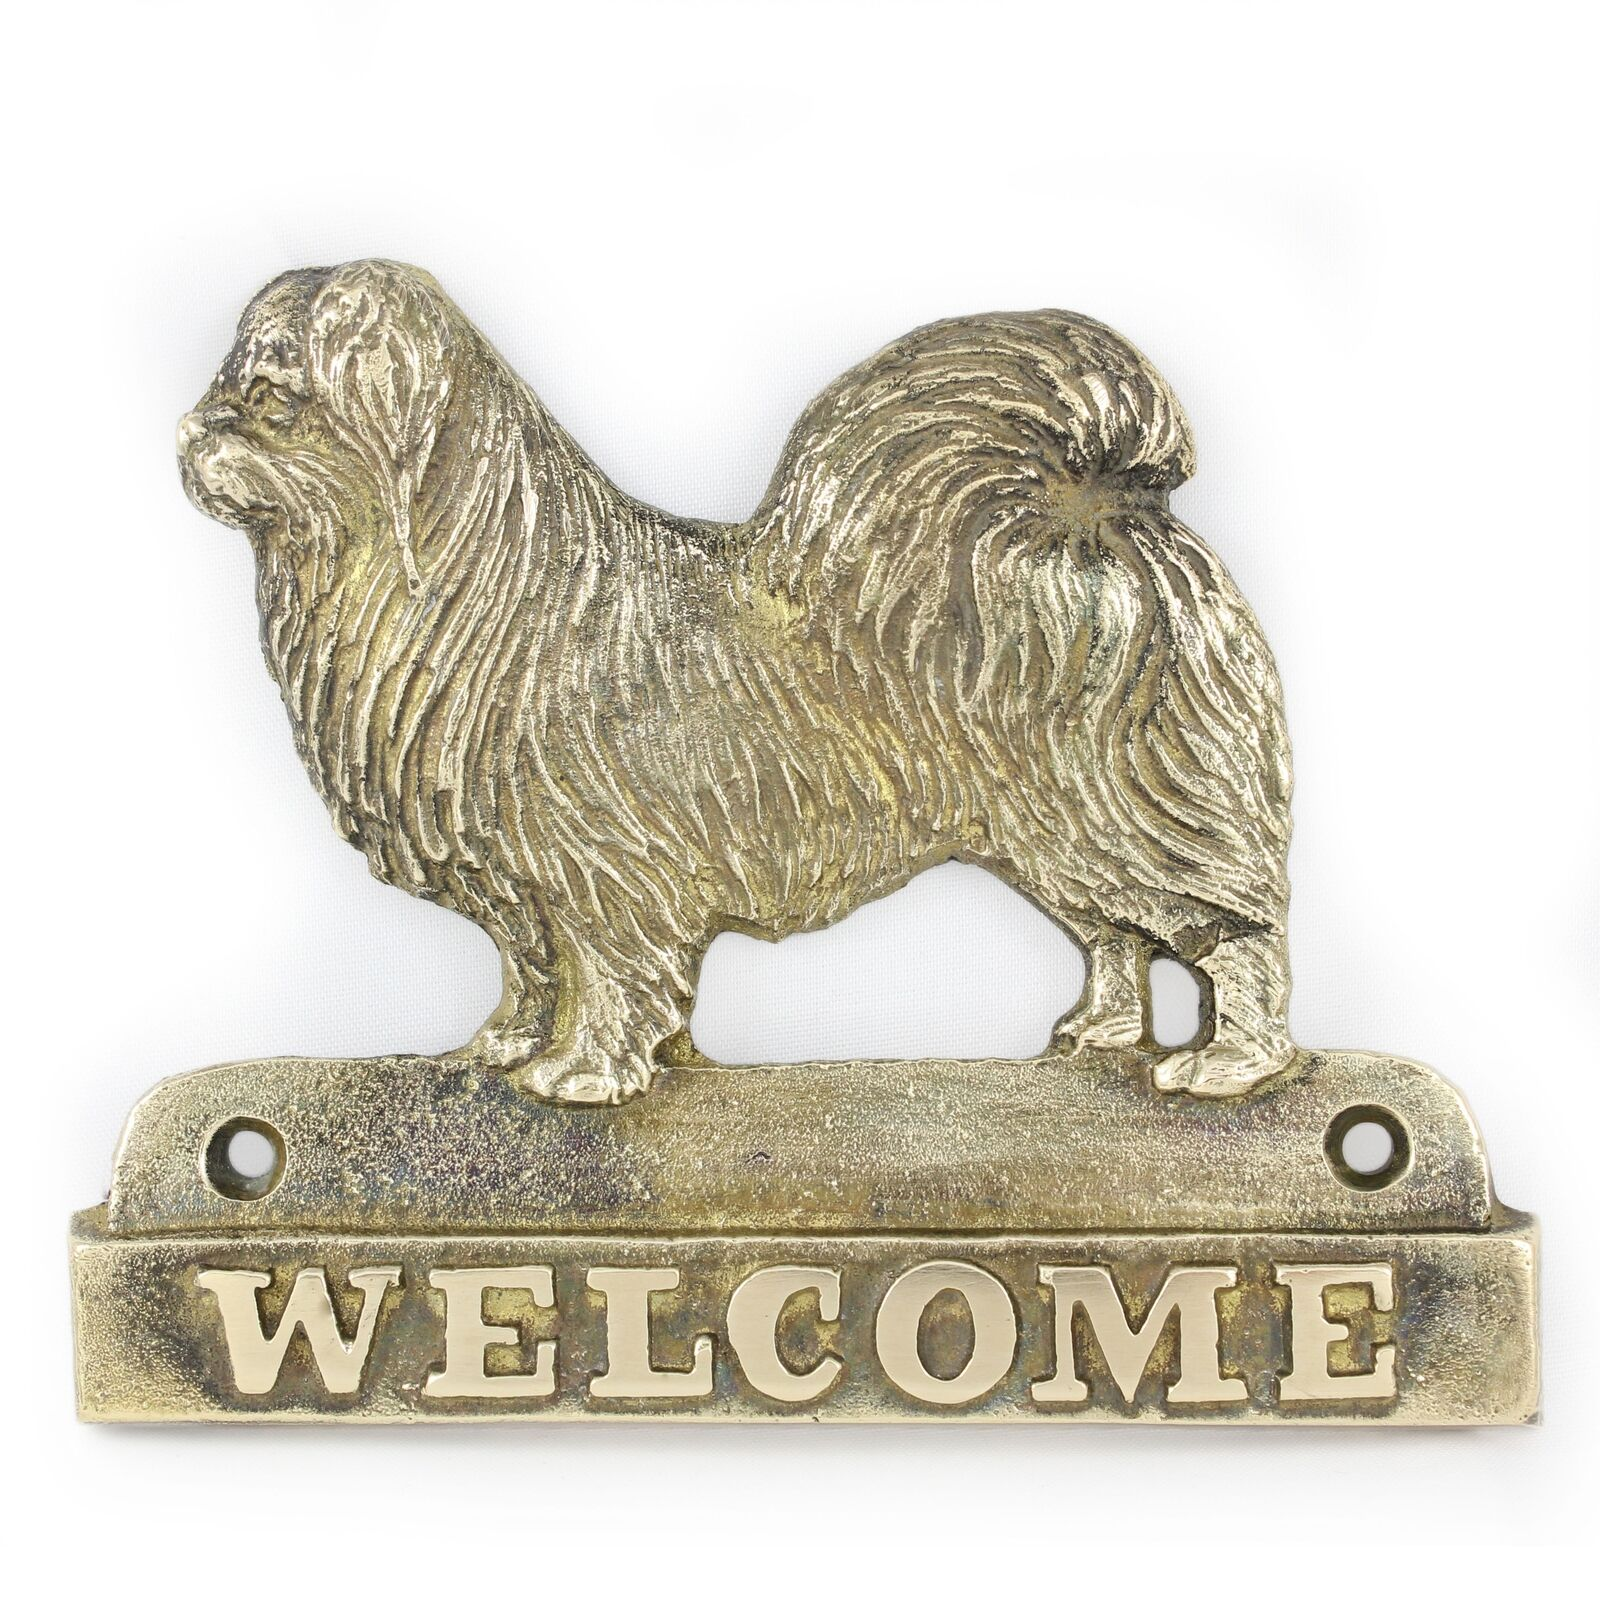 Tibetan Spaniel - brass tablet with image of a dog, Art Dog